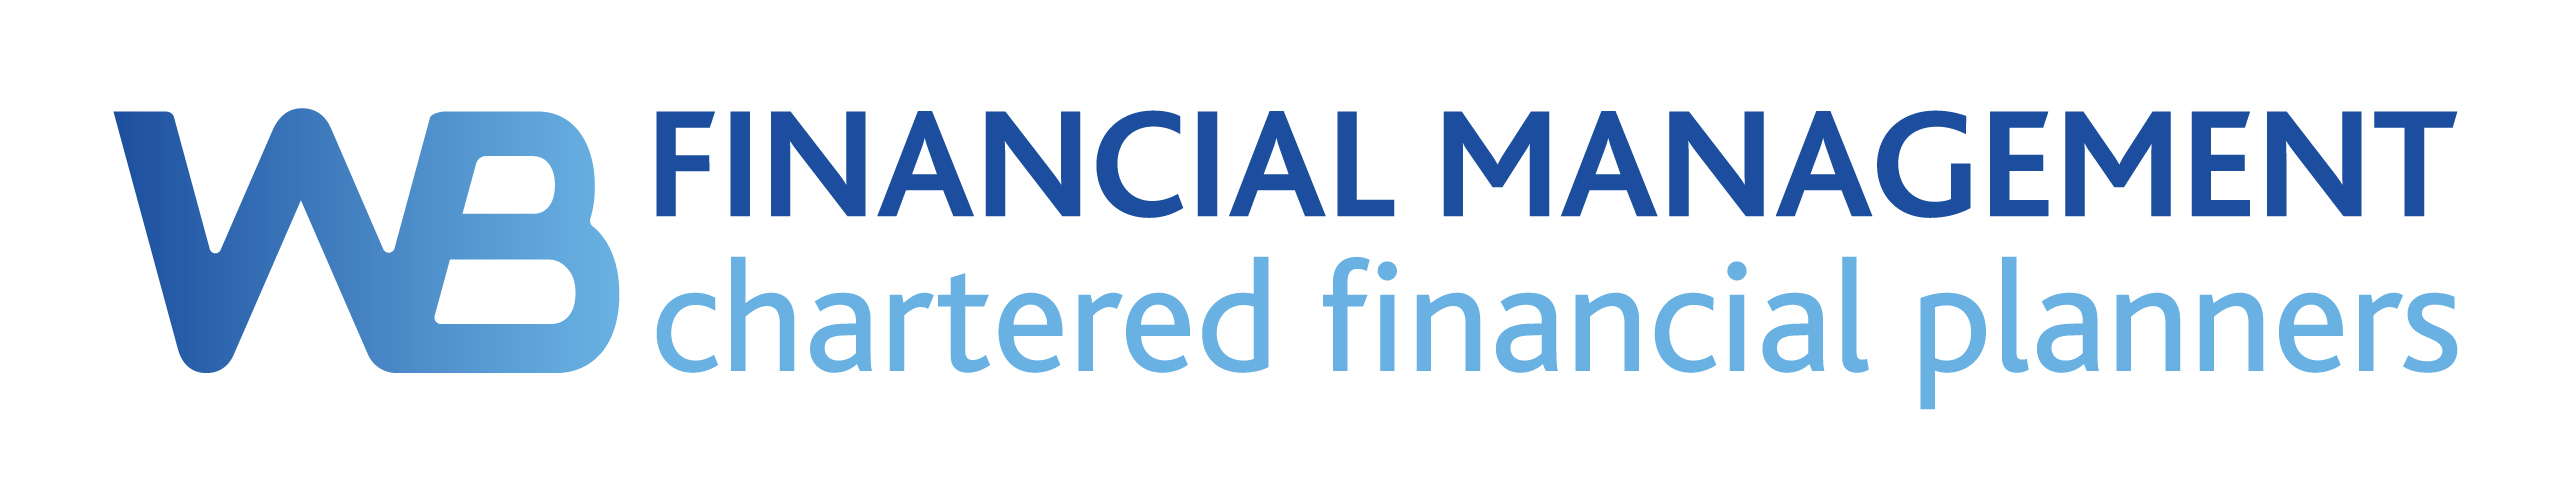 WB Financial Management logo CHOSEN